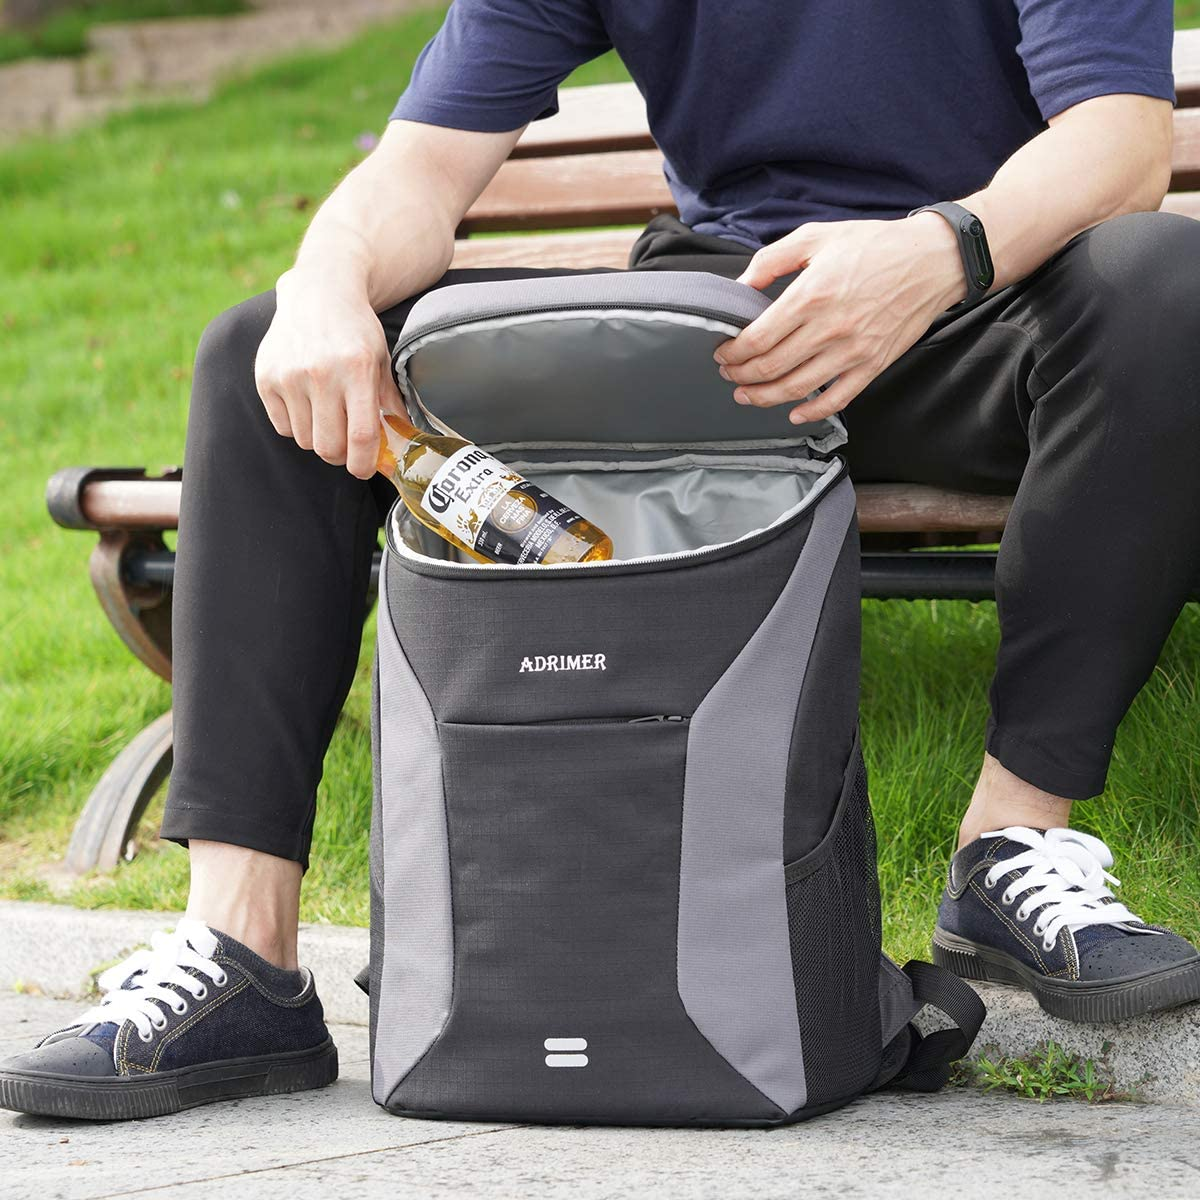 Day Trip ADRIMER Backpack Coolers Insulated Leakproof 30 Cans Lunch Cooler Backpack Insulated Lightweight for Men Women to Picnic Park Hiking Camping